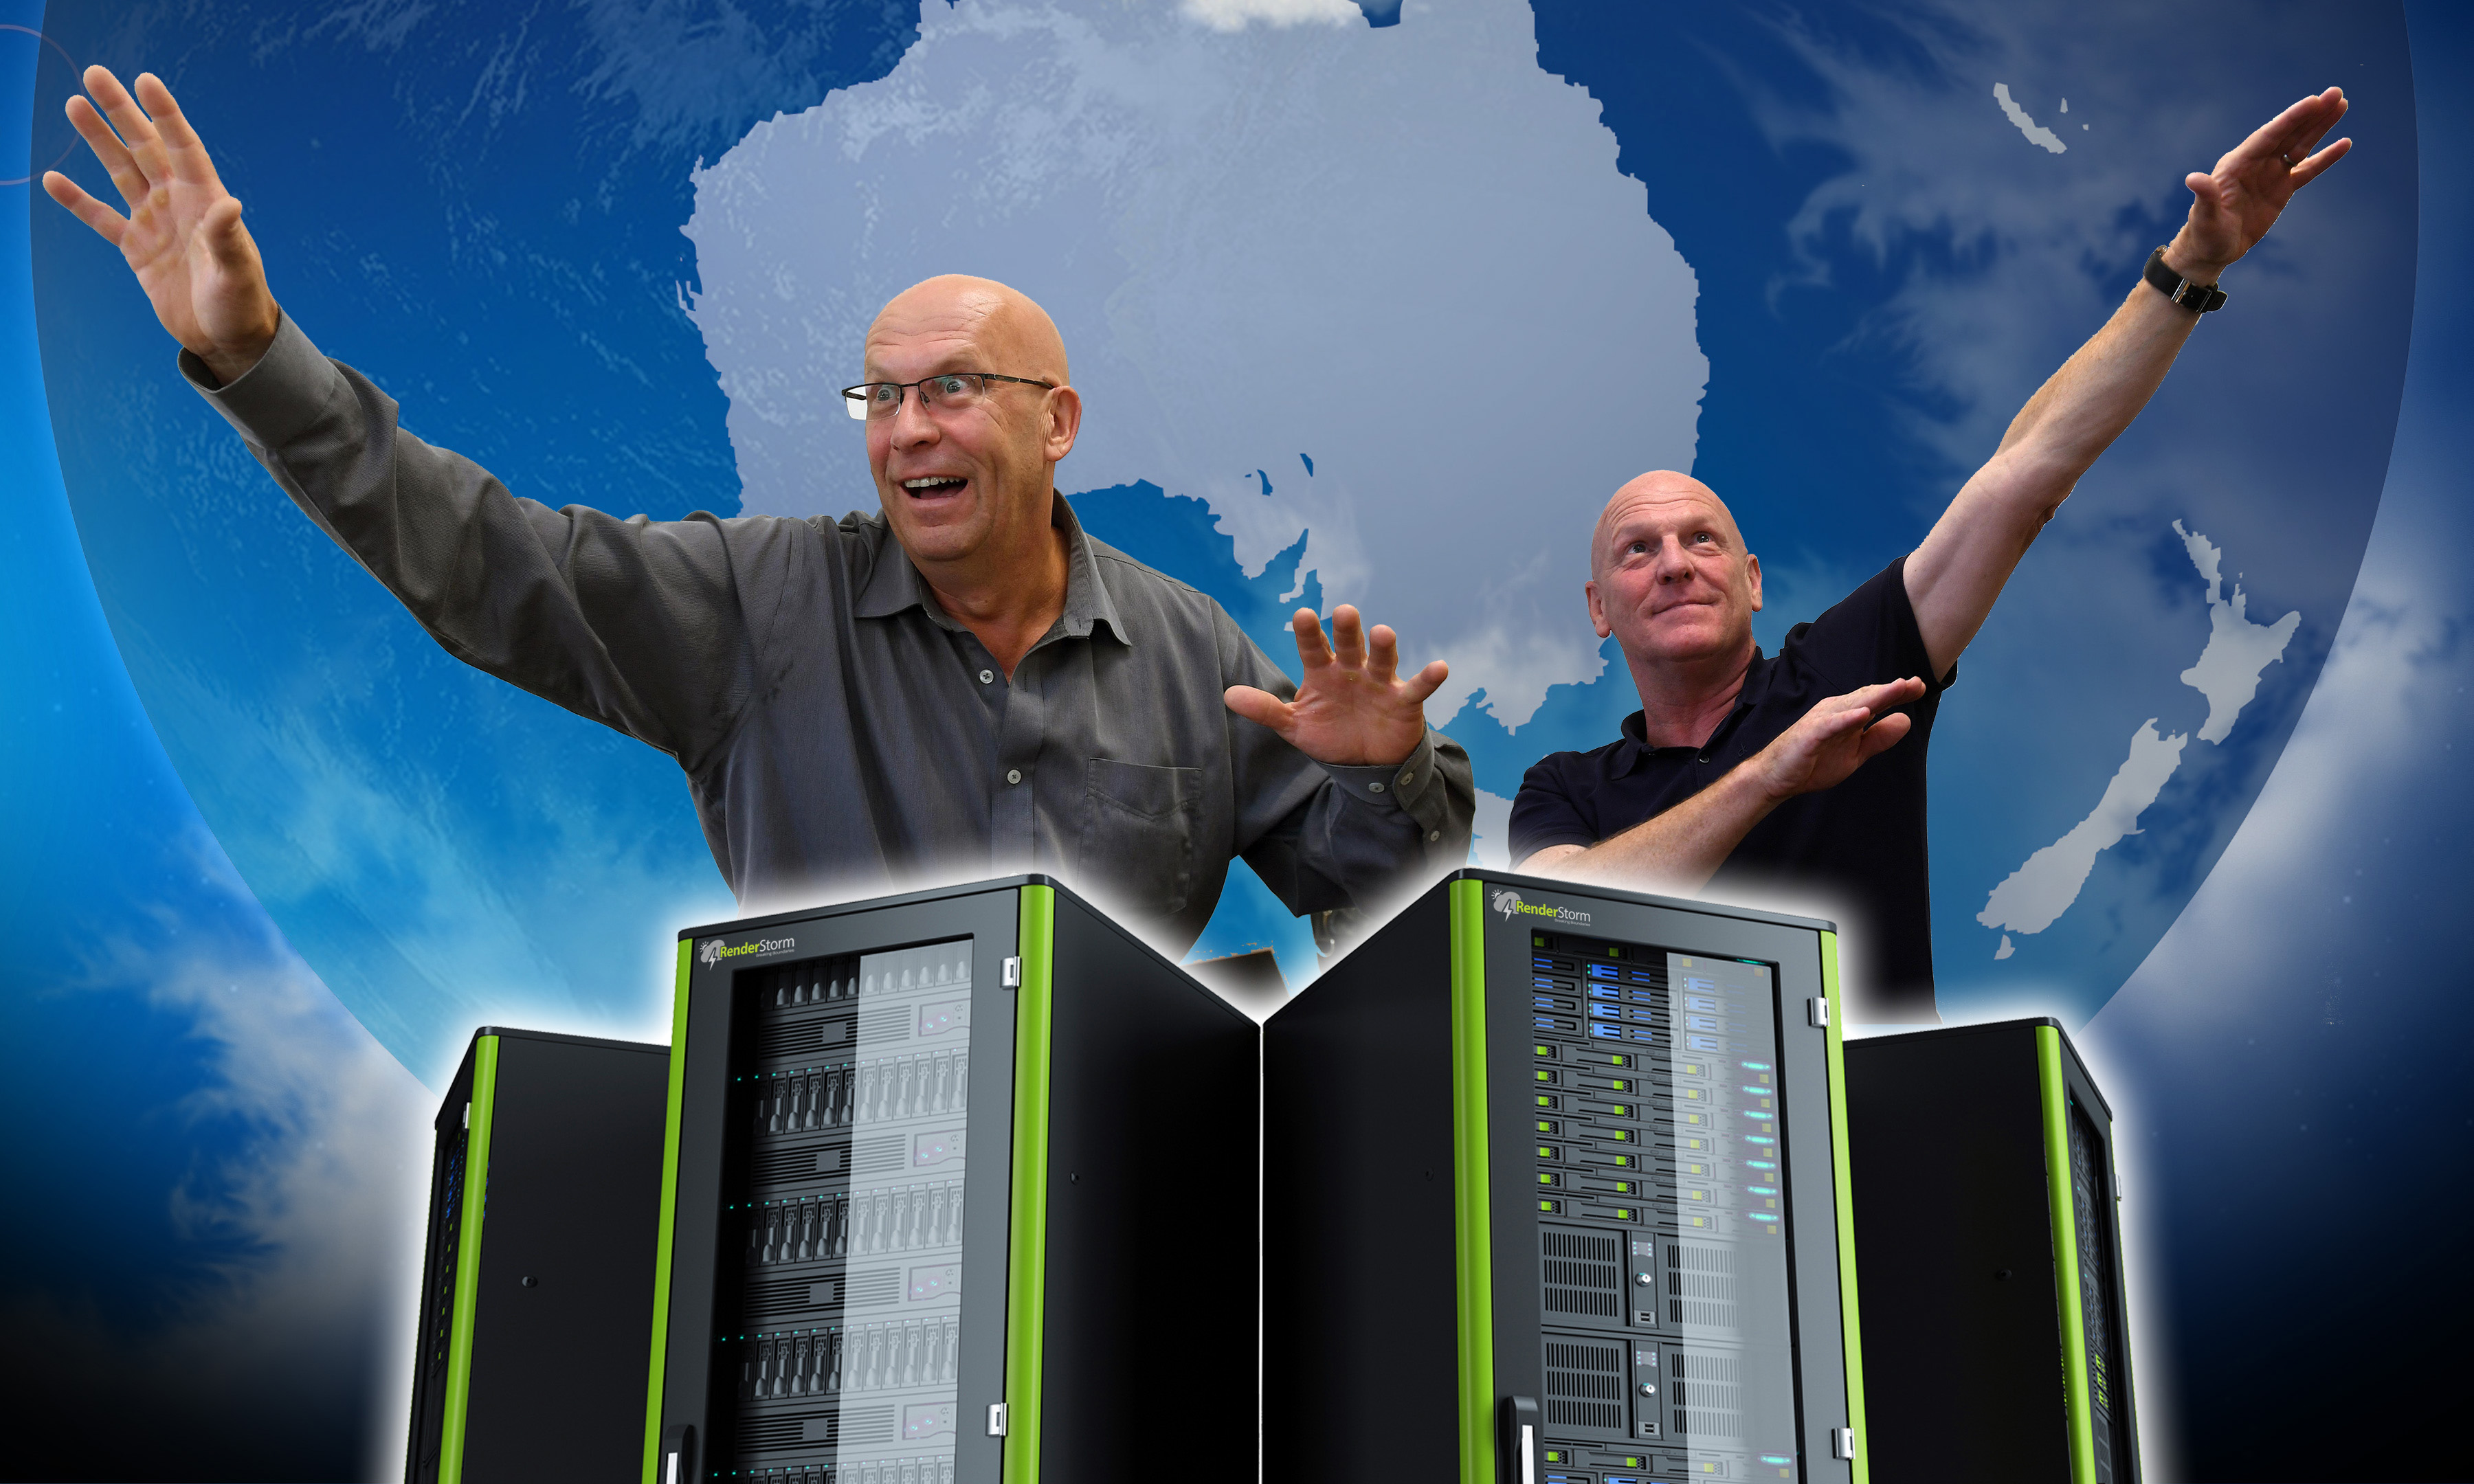 RenderStorm New Zealand manager Andy Thompson (left) and chairman Adrian Thompson are preparing to build a render farm in Dunedin. Photo/Illustration: Stephen Jaquiery/Kurt Erikson.